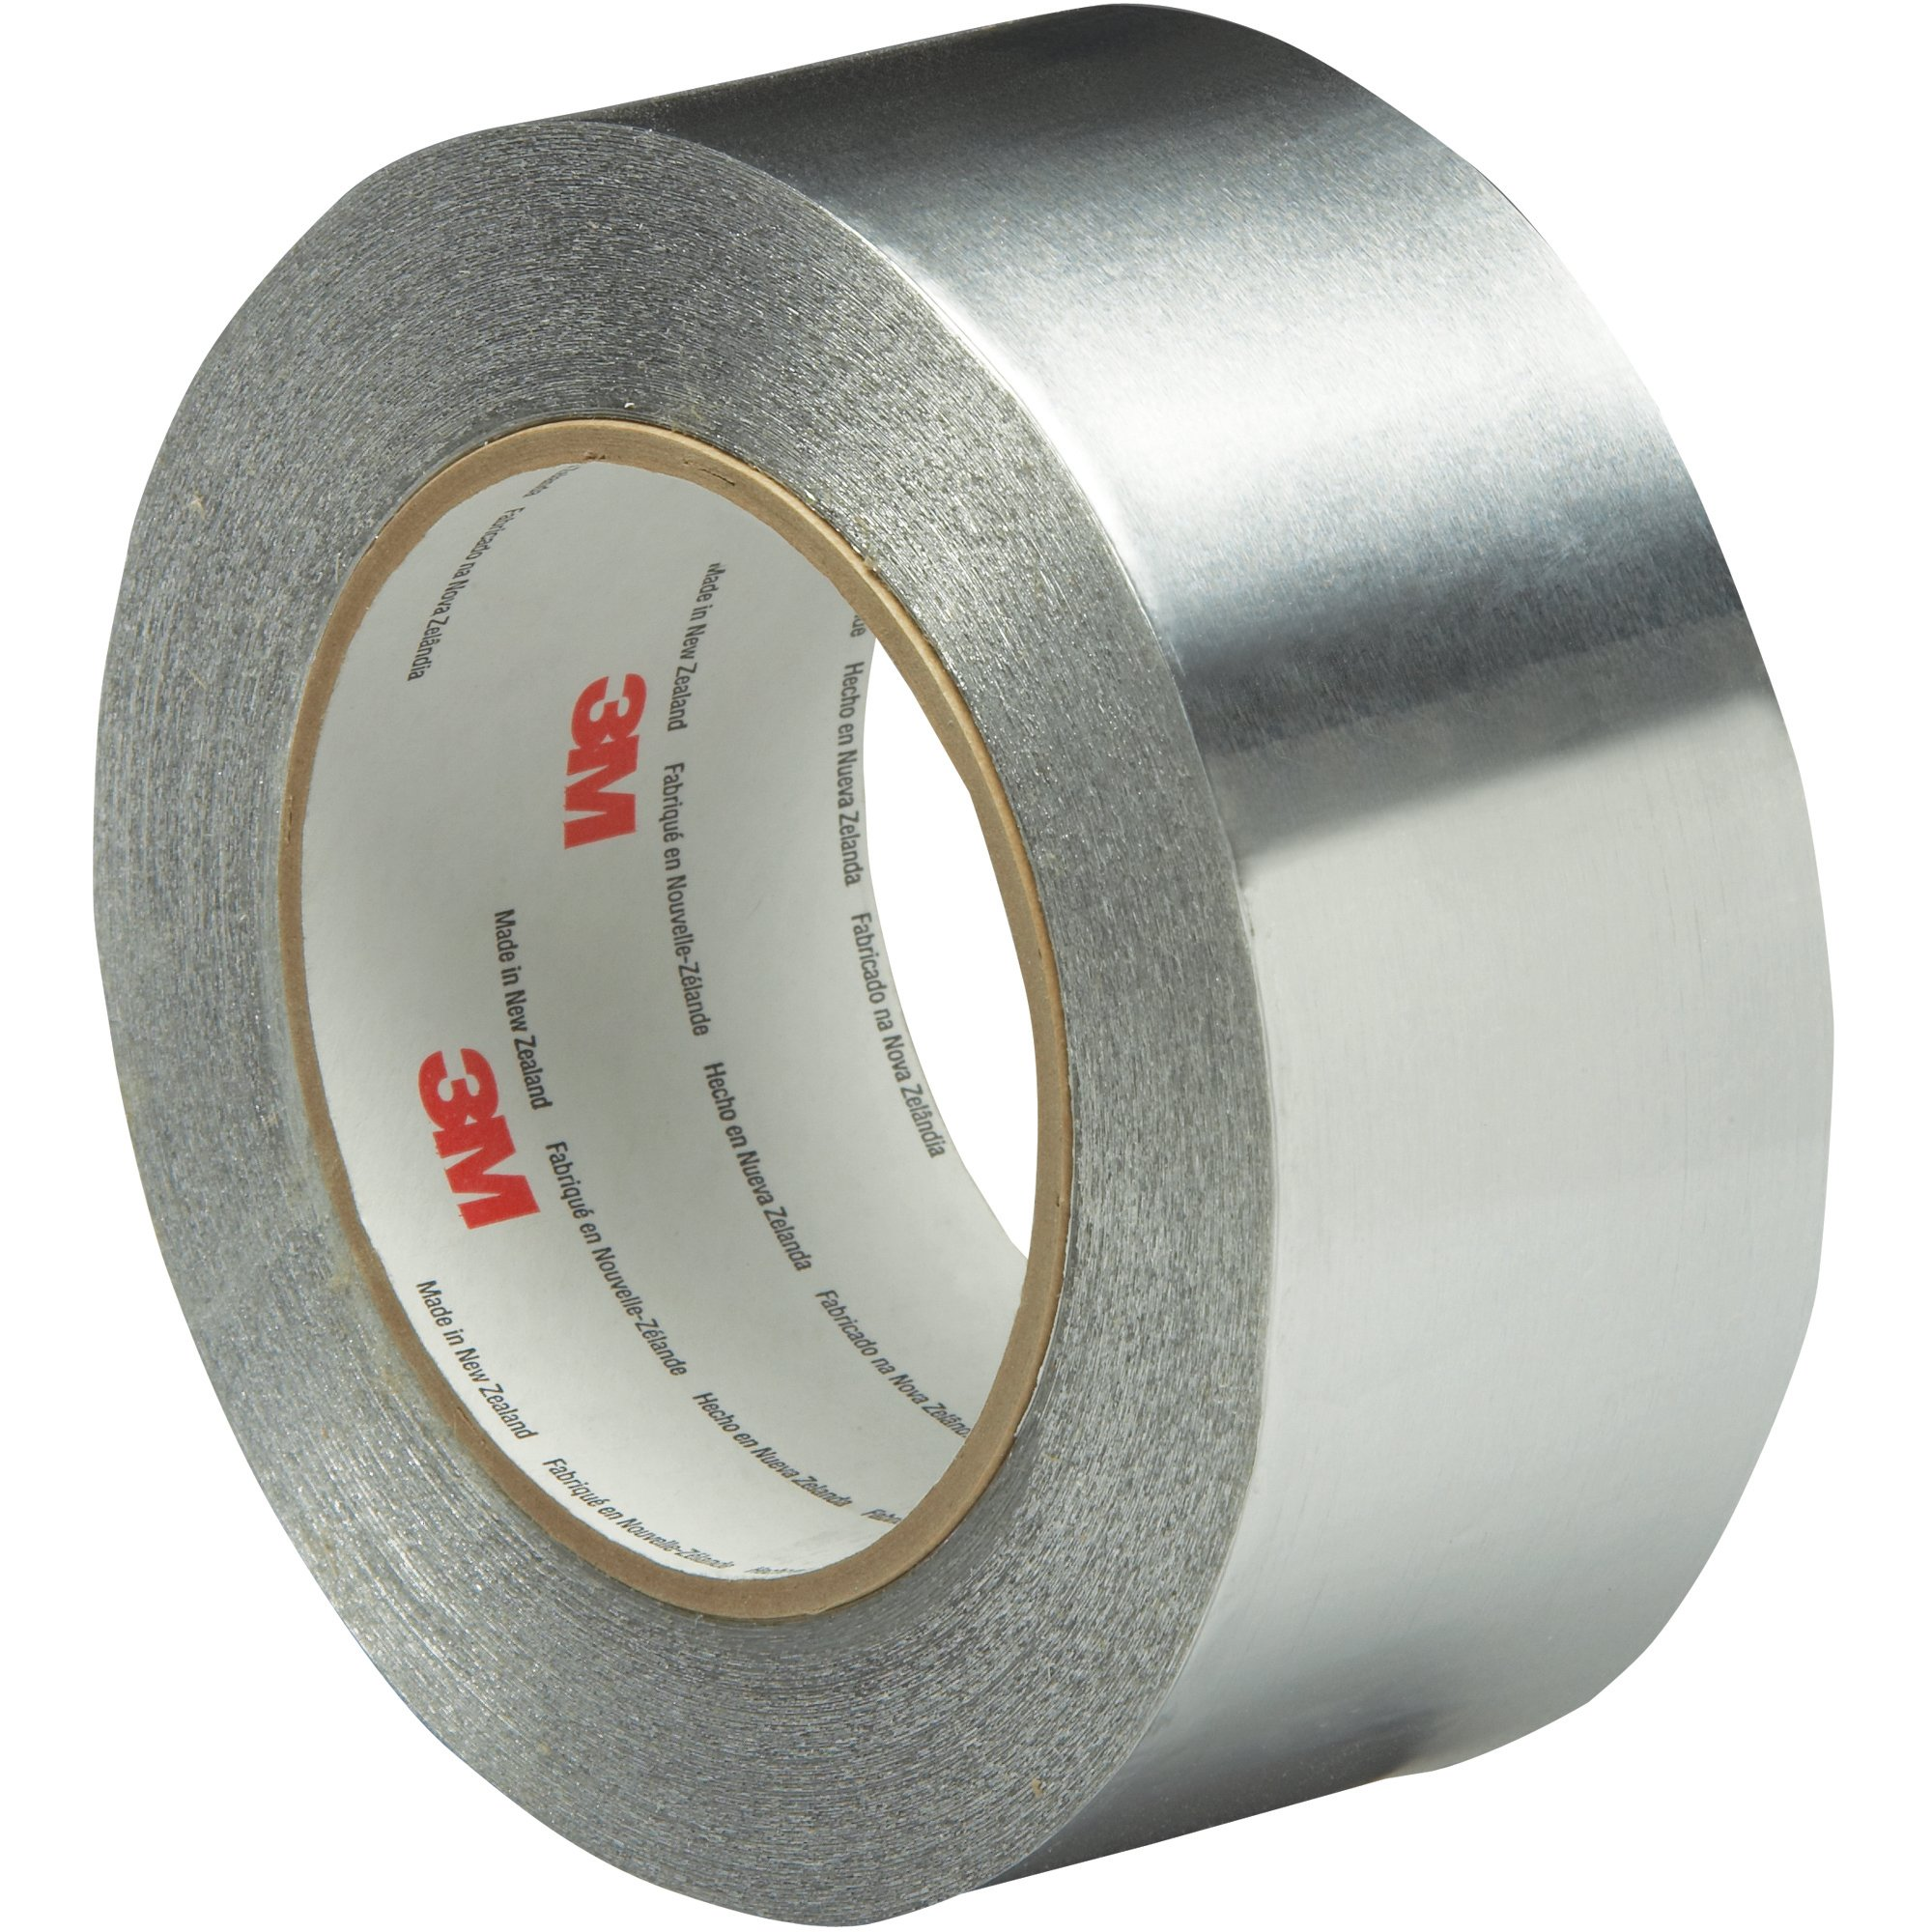 Boxes Fast 3M 425 Aluminum Foil Tape, 4.6 Mil, 2'' x 5 yds, Silver, (Pack of 1)